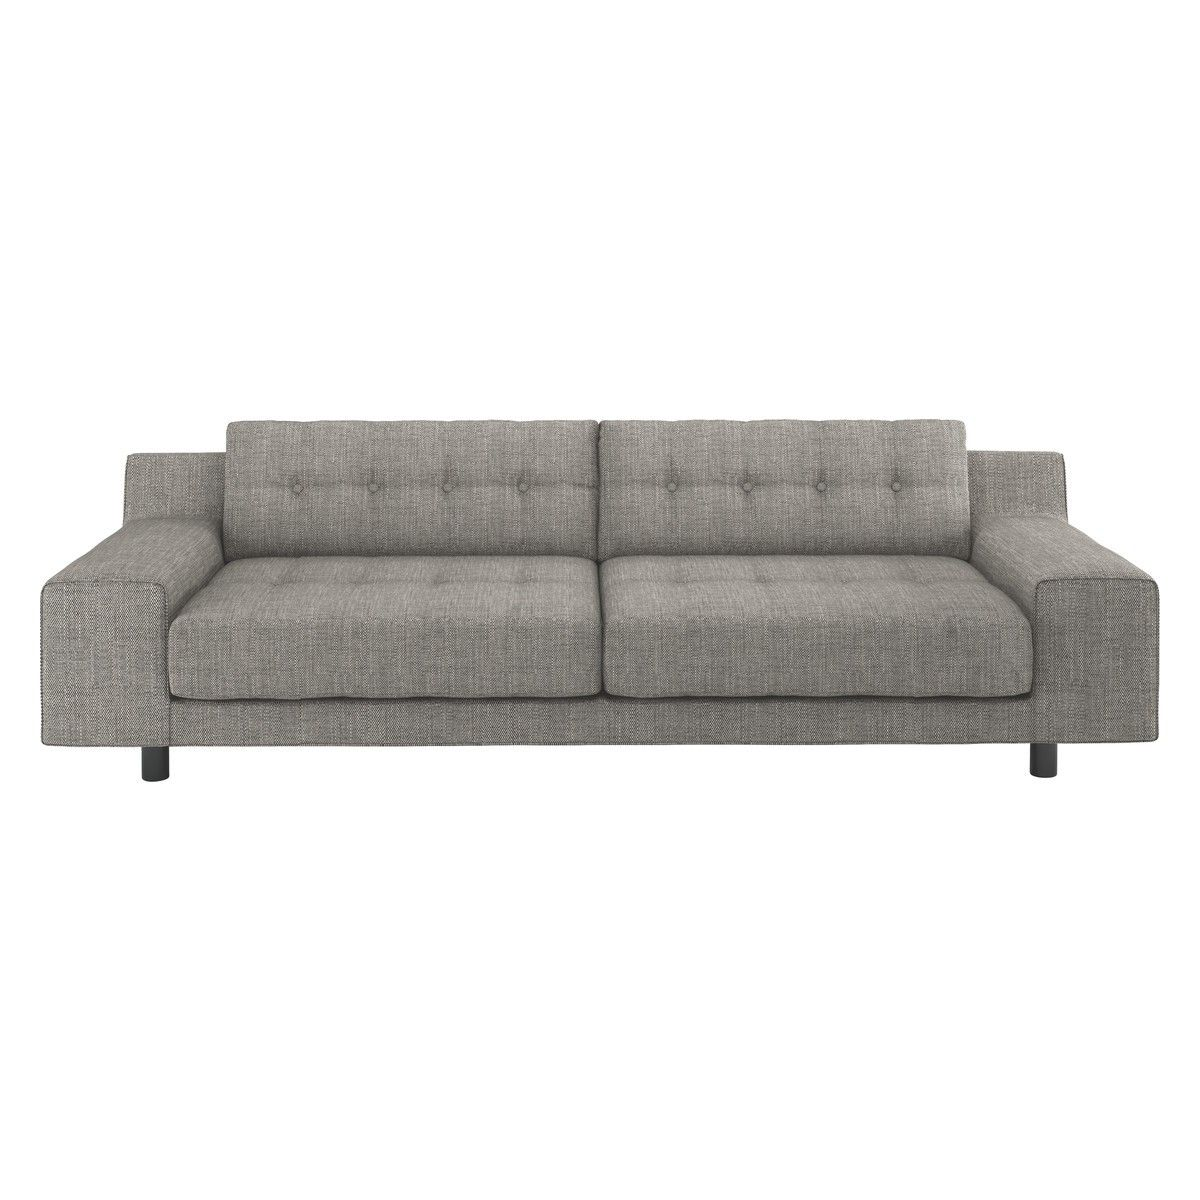 Sydney Central Furniture 4 Seater Sofas Fabric Contemporary Sofa Fabric 4 Seater